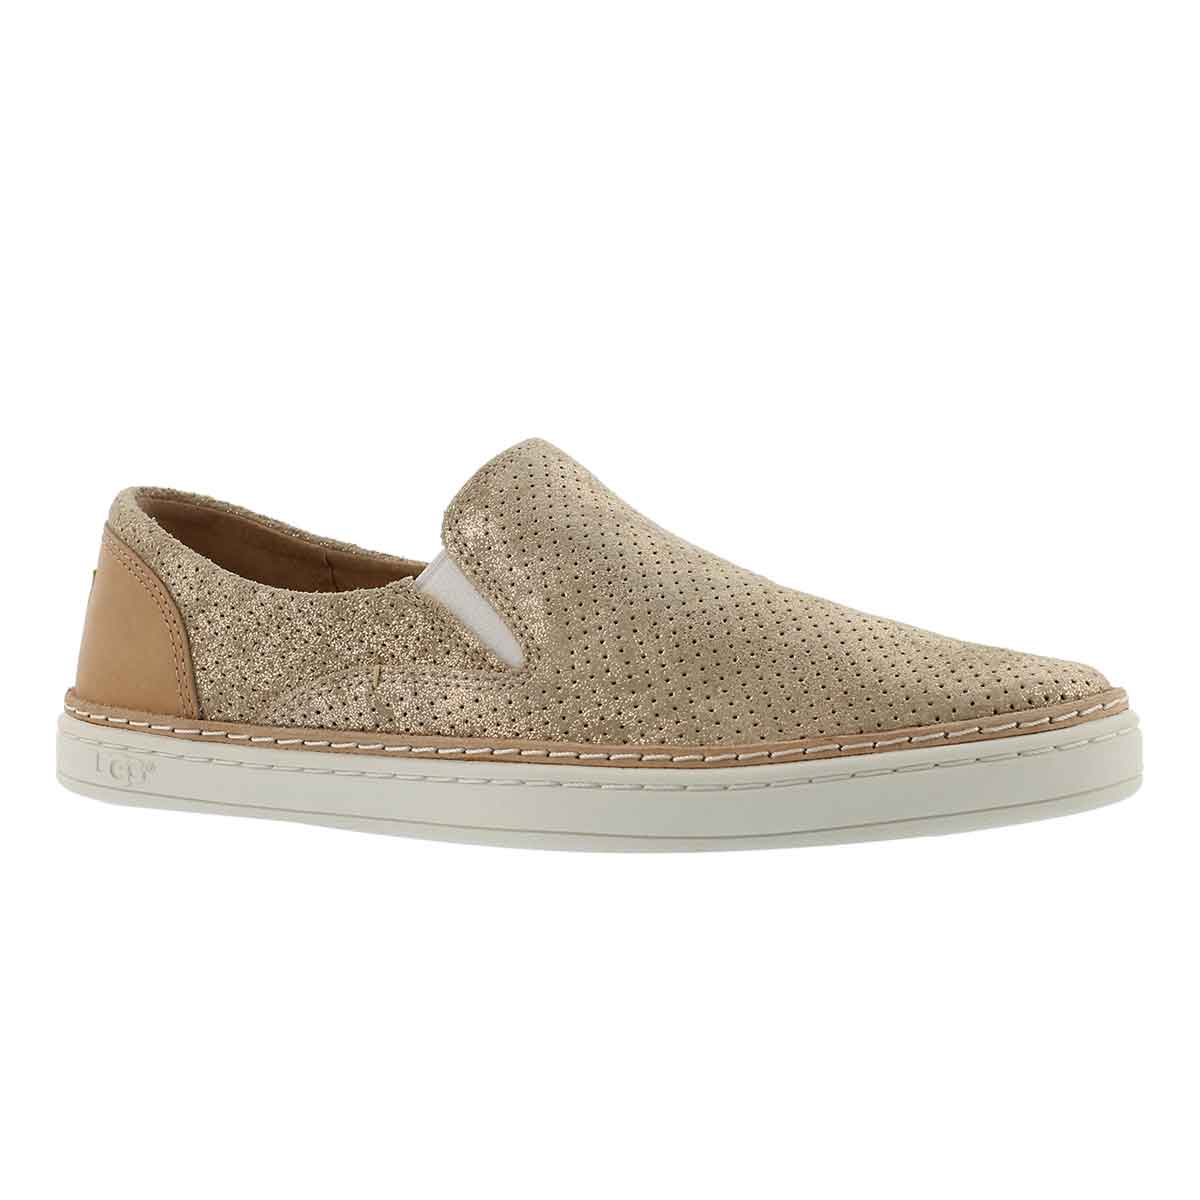 Women's ADLEY PERFORATED STARDUST casual slip ons